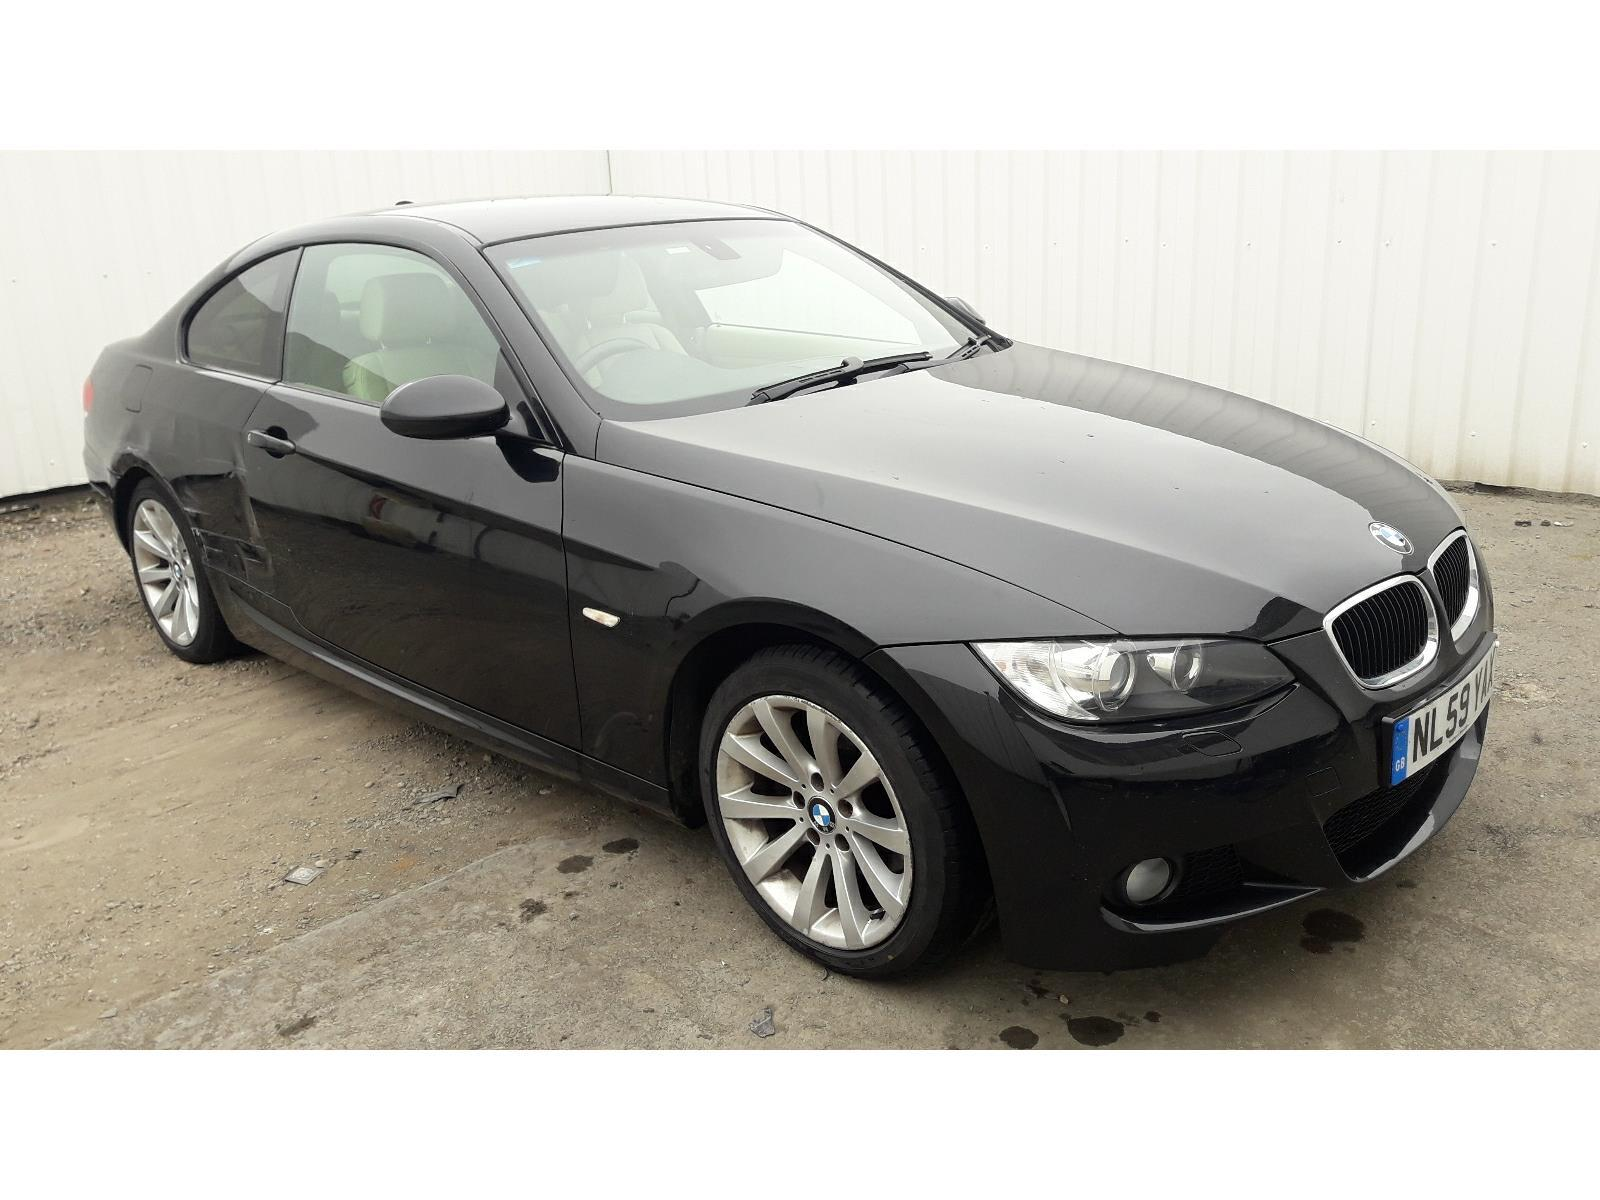 2009 BMW 3 SERIES 320D M SPORT HIGHLINE 1995cc TURBO DIESEL AUTOMATIC 6 Speed 2 DOOR COUPE